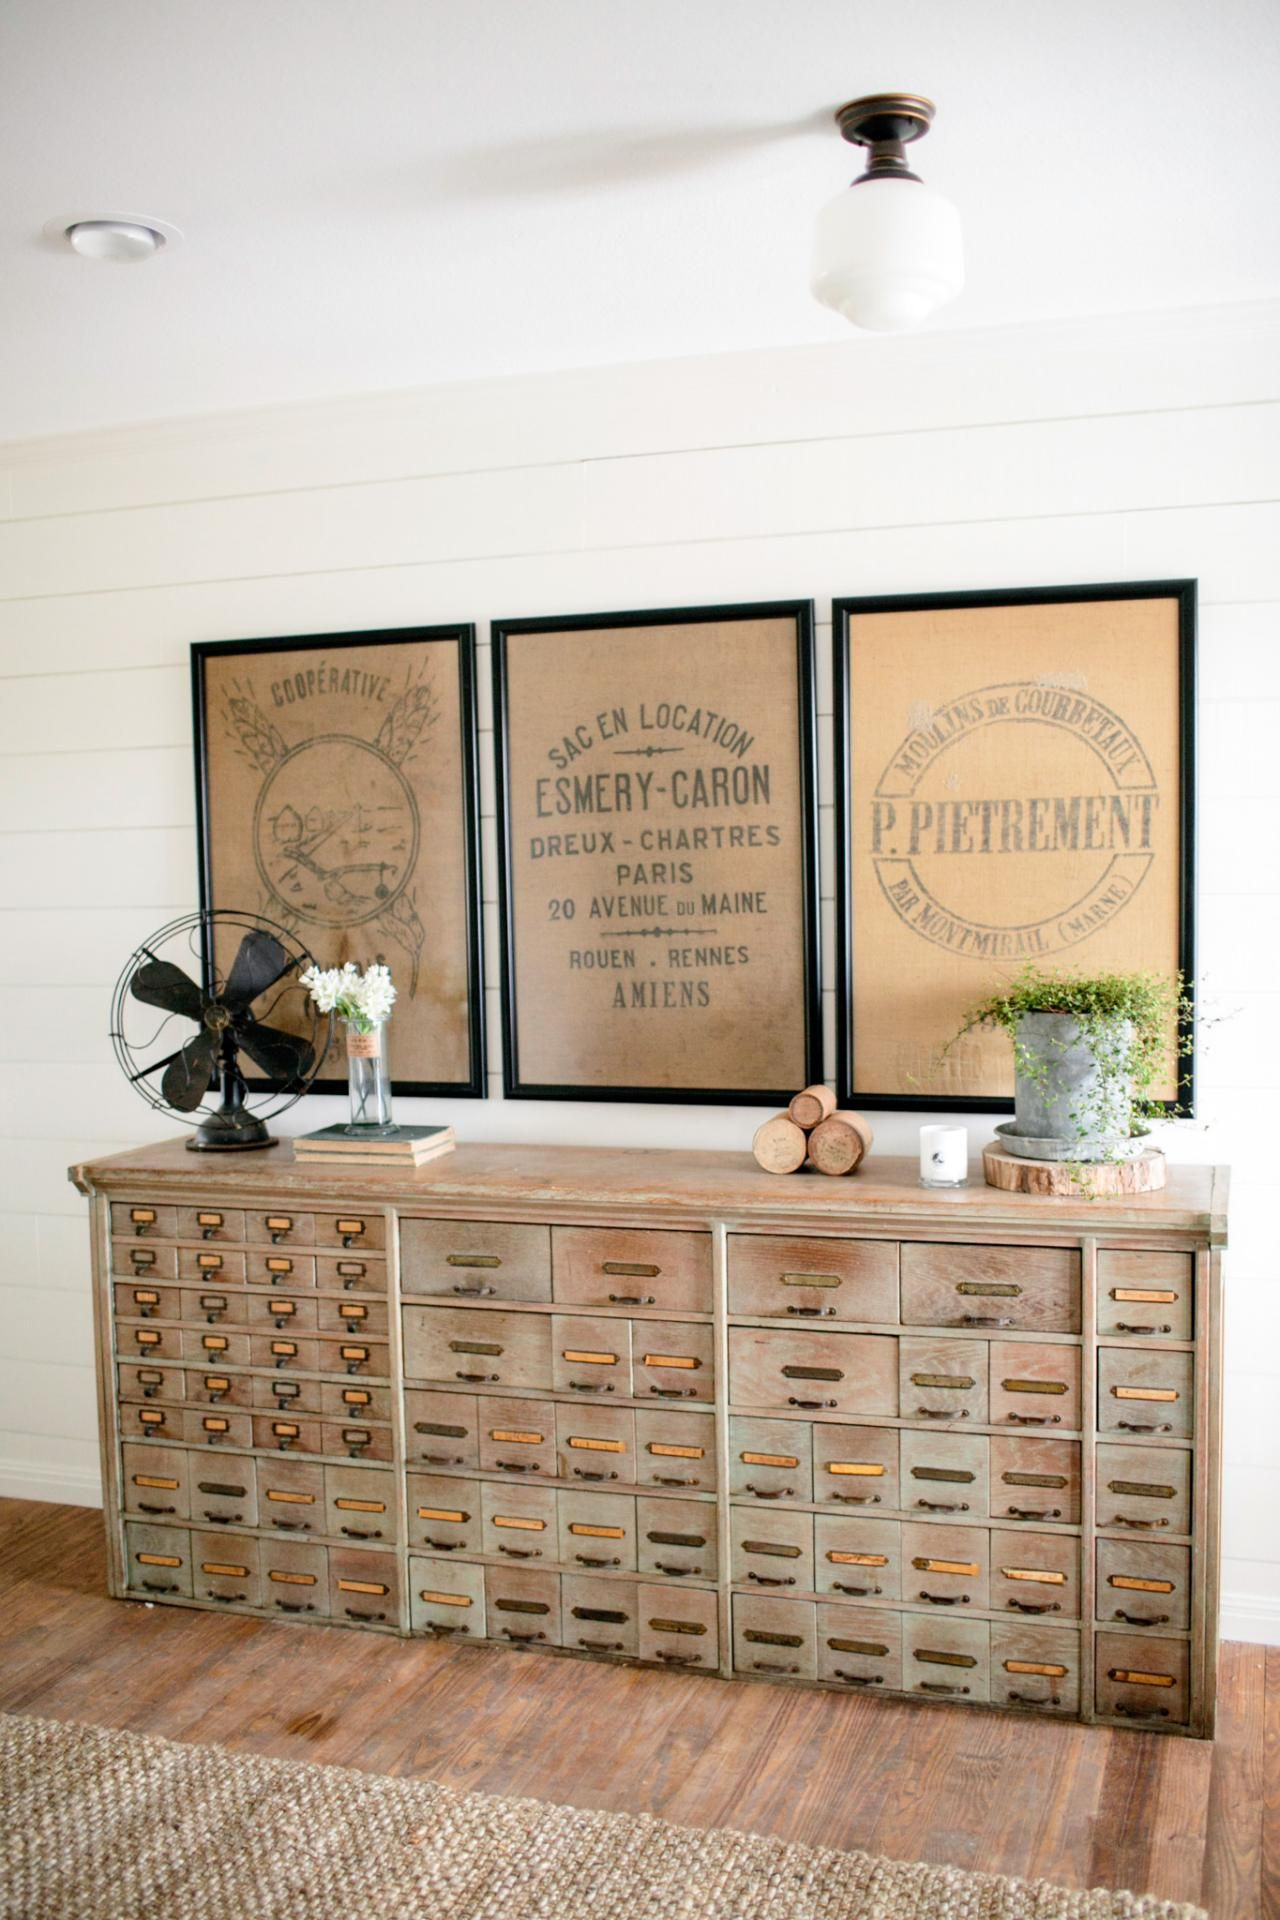 Fixer upper kitchen wall decor - Fixer Upper Country Style In A Very Small Town Hgtv S Fixer Upper With Chip